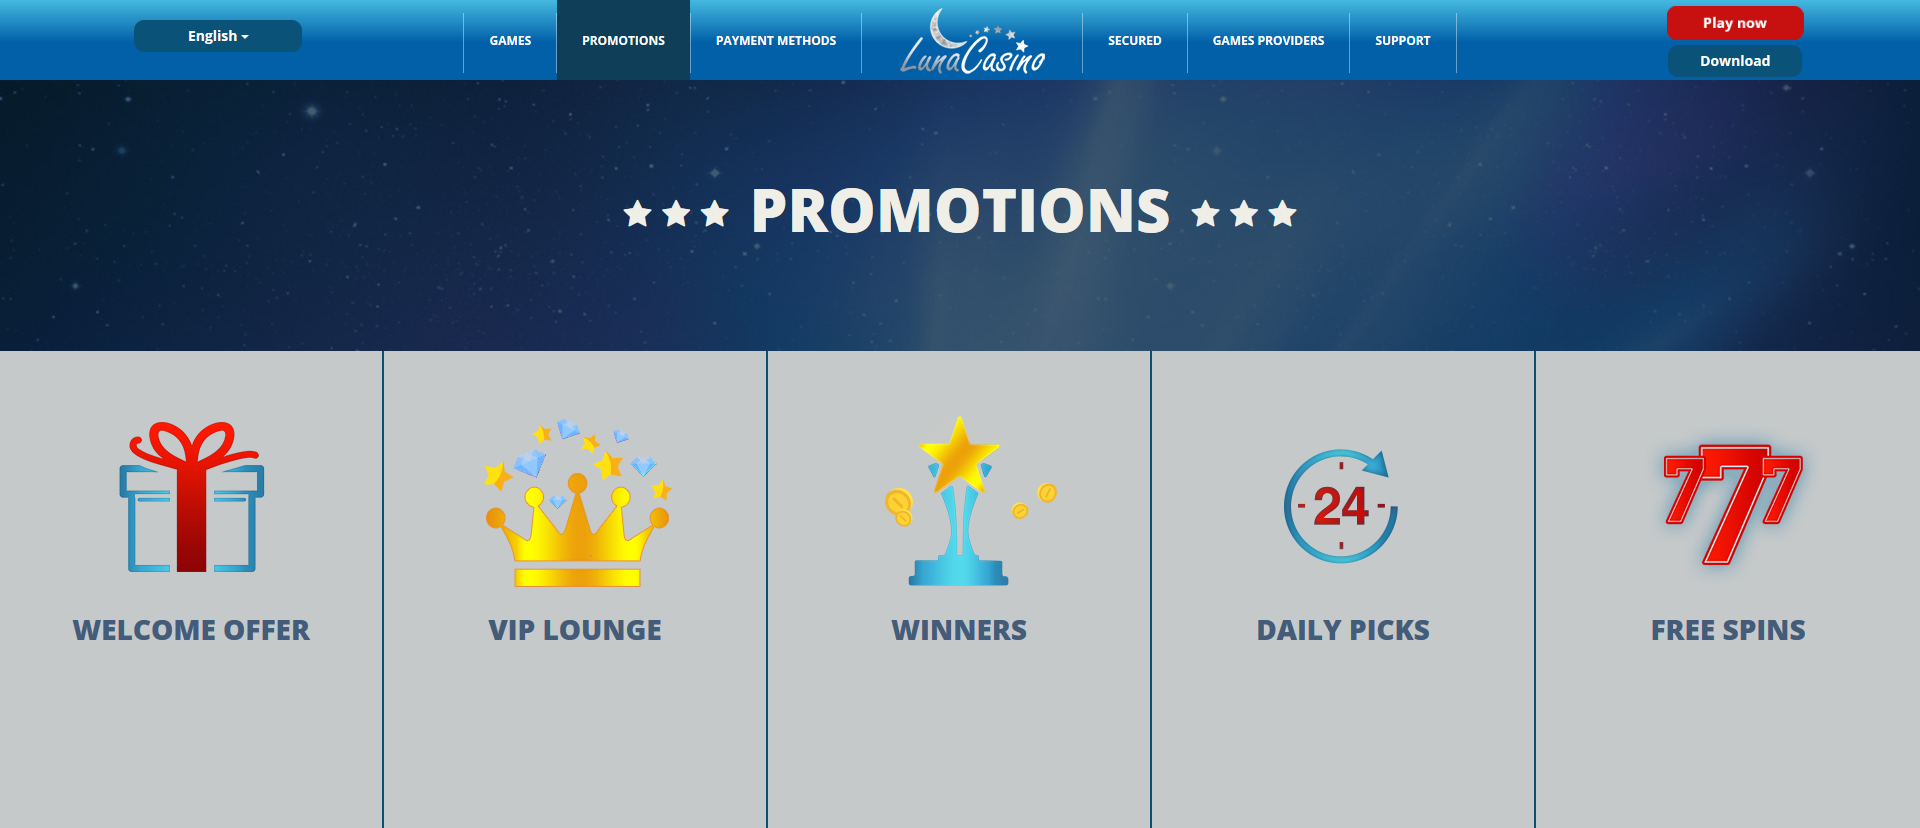 Diamond VIP Casino Online Review With Promotions & Bonuses